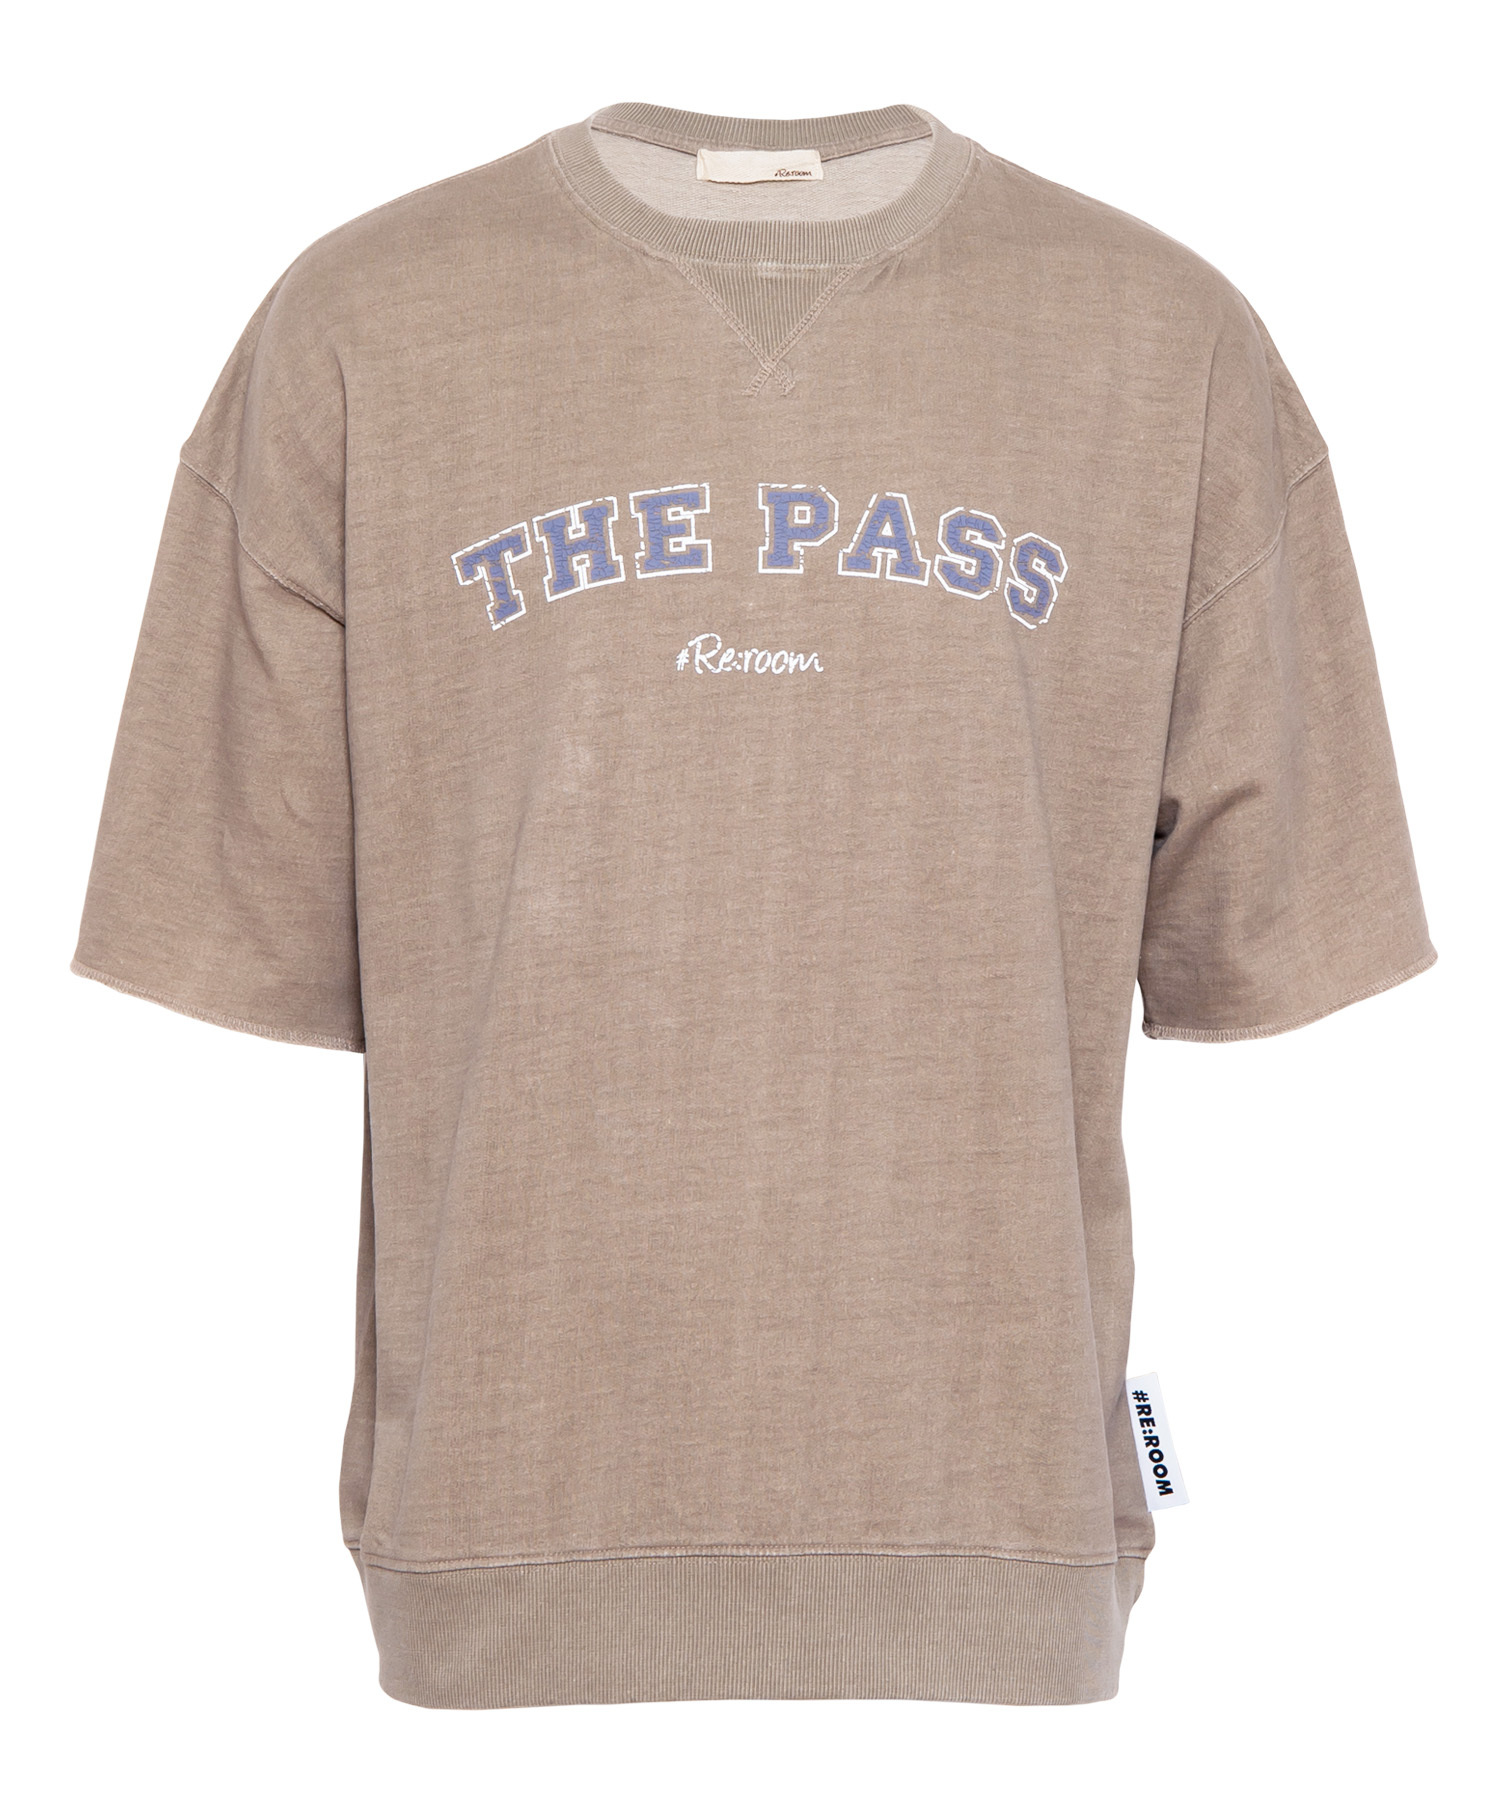 "WASHED VINTAGE SWEAT BIG T-shirt ""THE PASS""[REC382]"